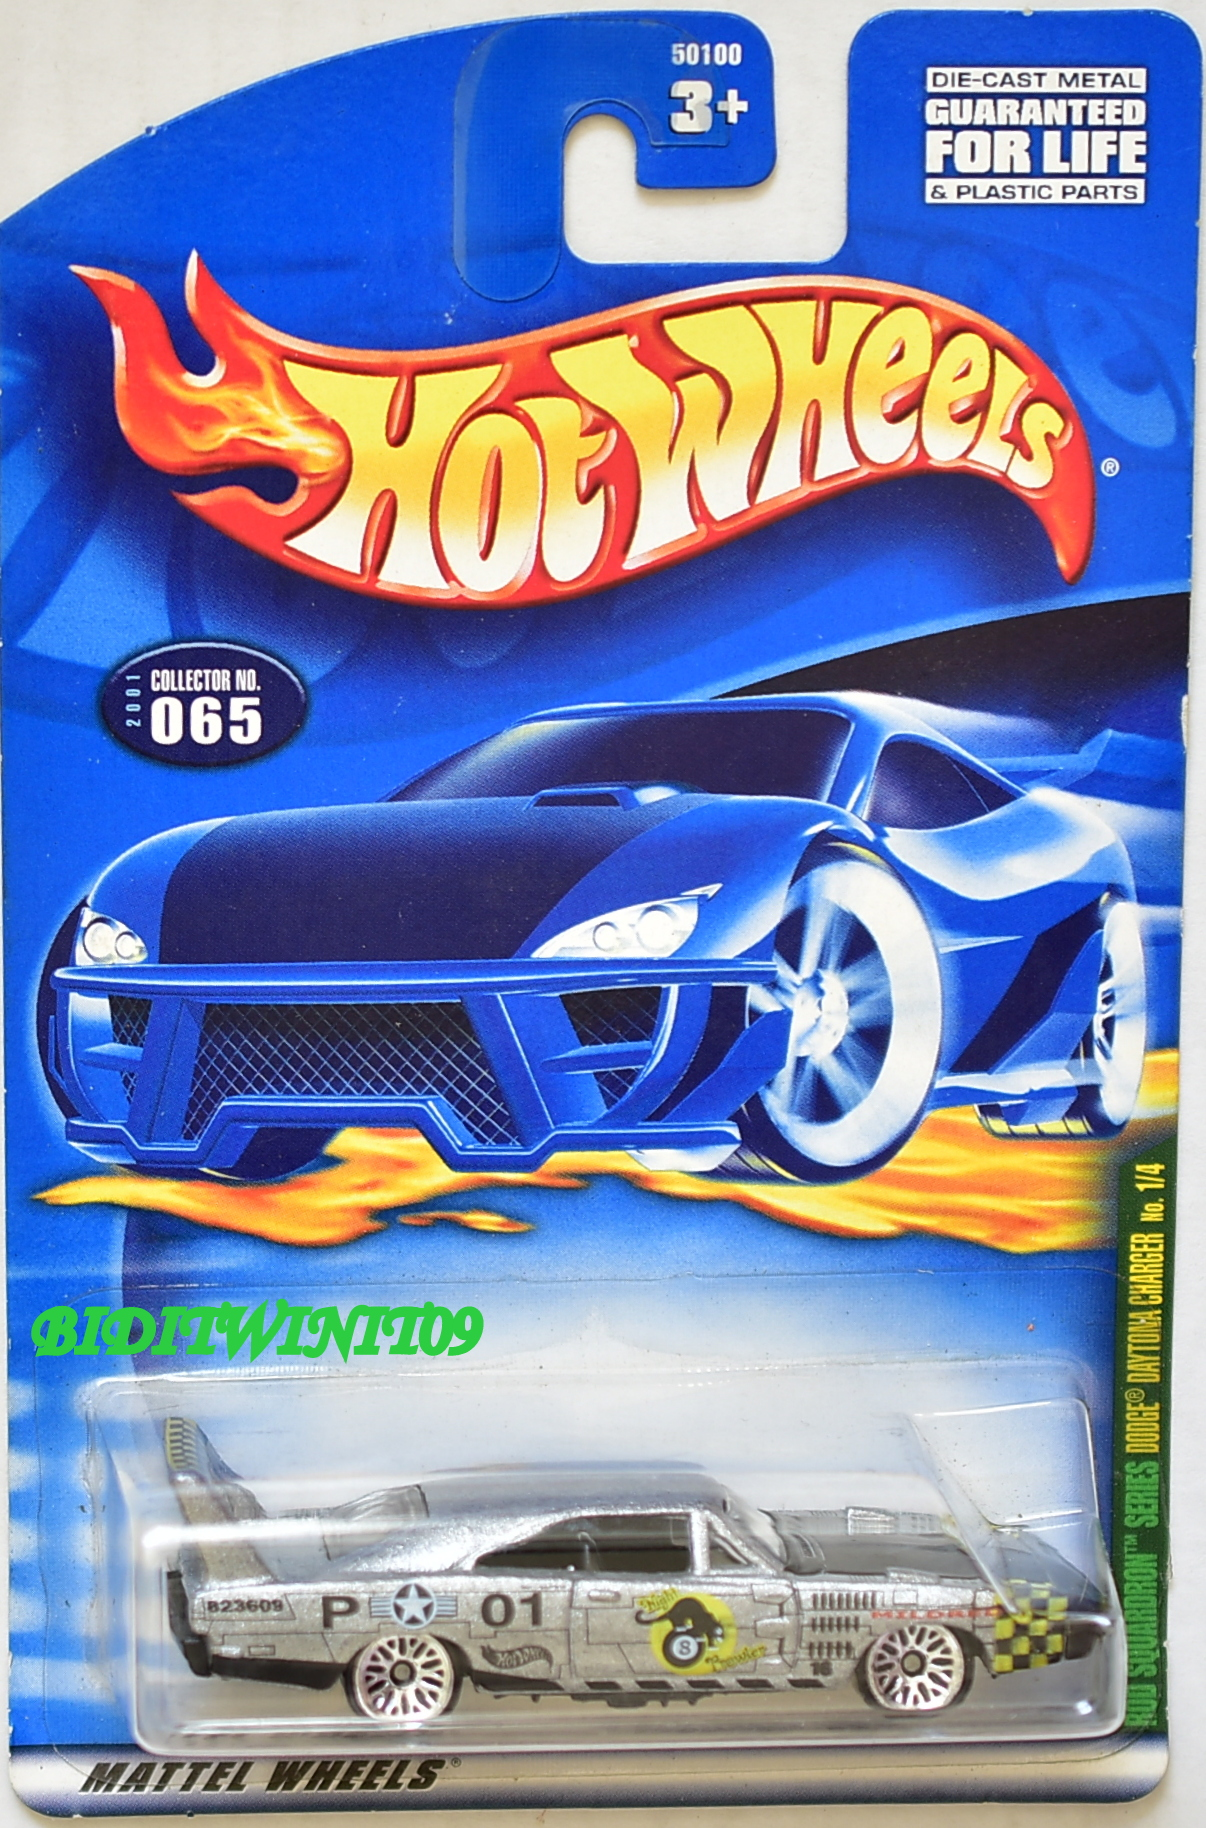 HOT WHEELS 2001 ROD SQUADRON SERIES DODGE DAYTONA CHARGER #1/4